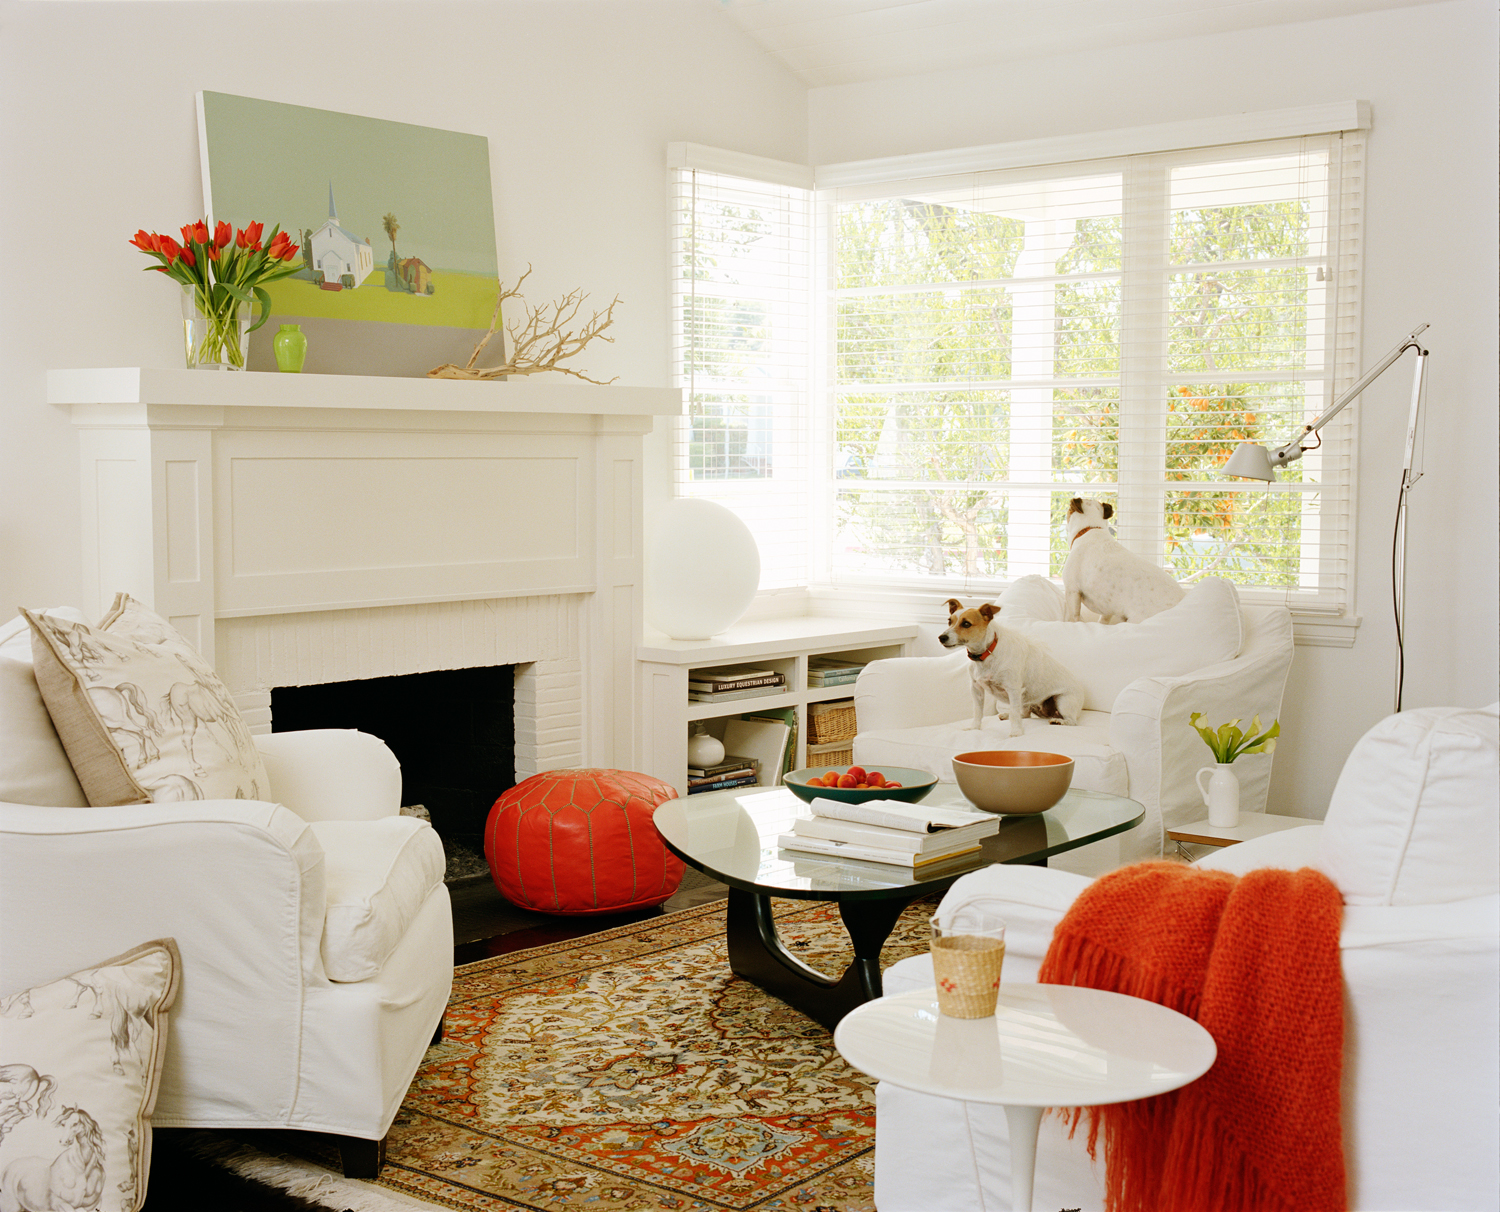 15 Clever Ideas For A Small Living Room - Reverb